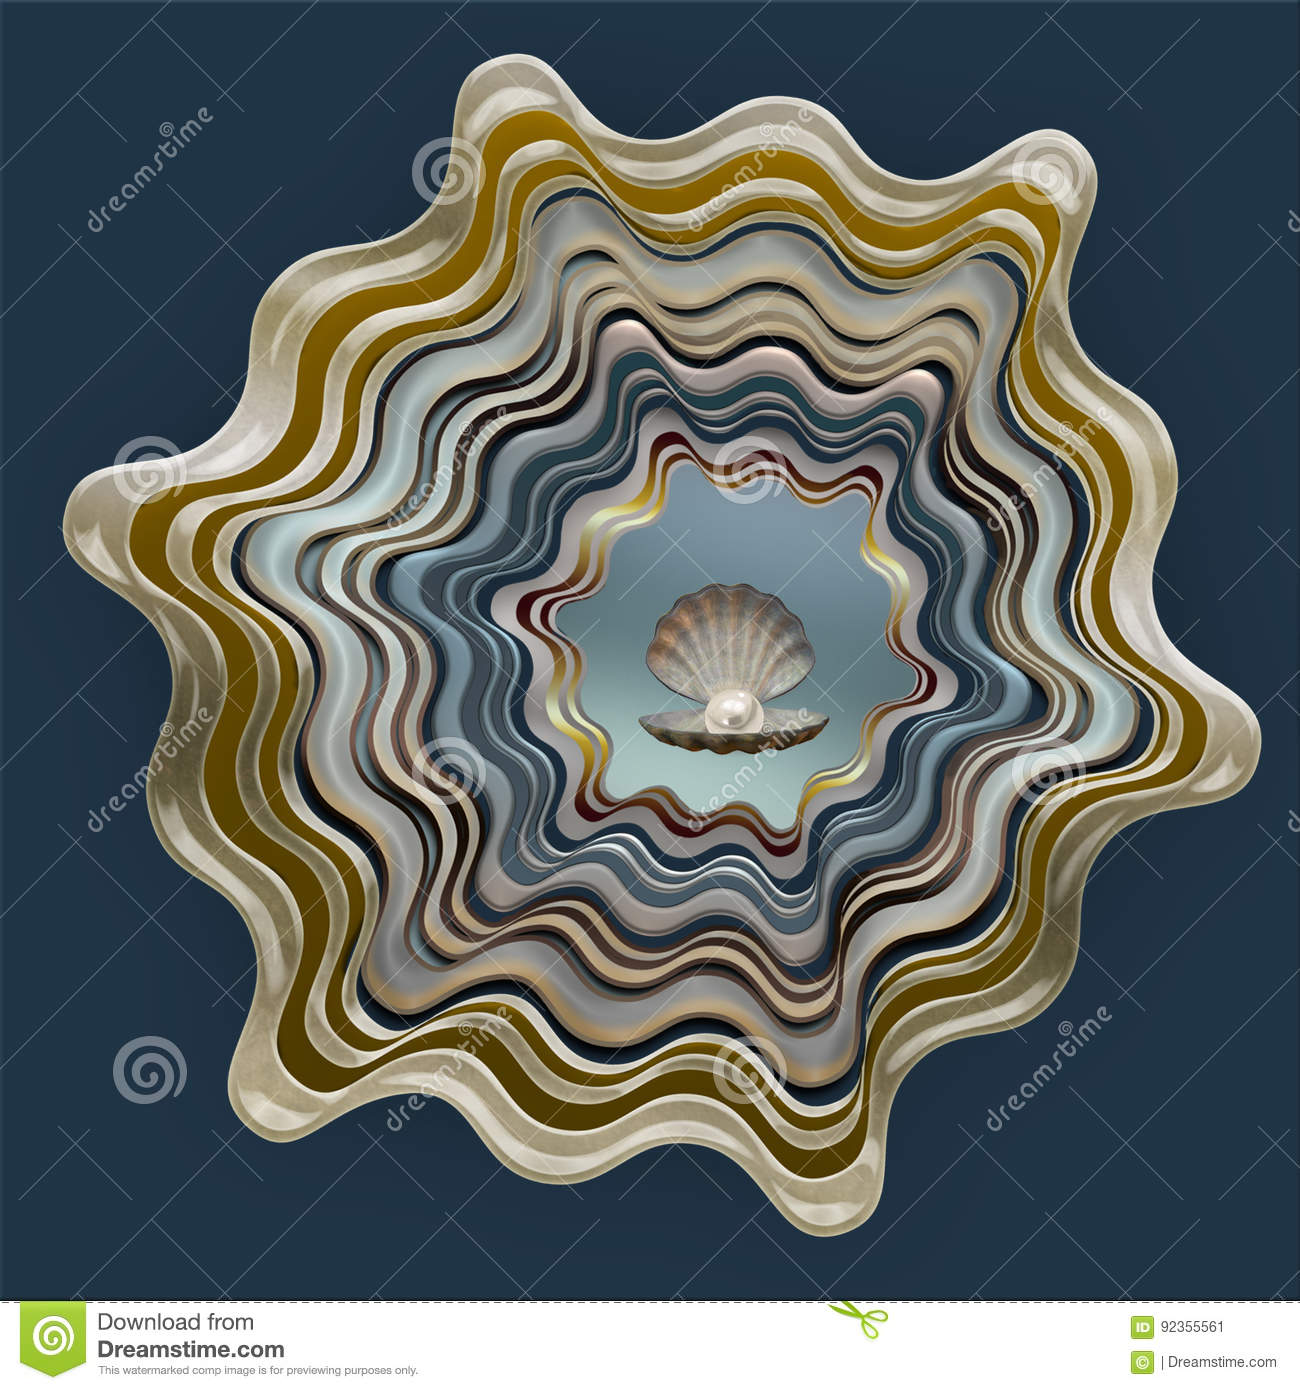 Abstract shell patroon